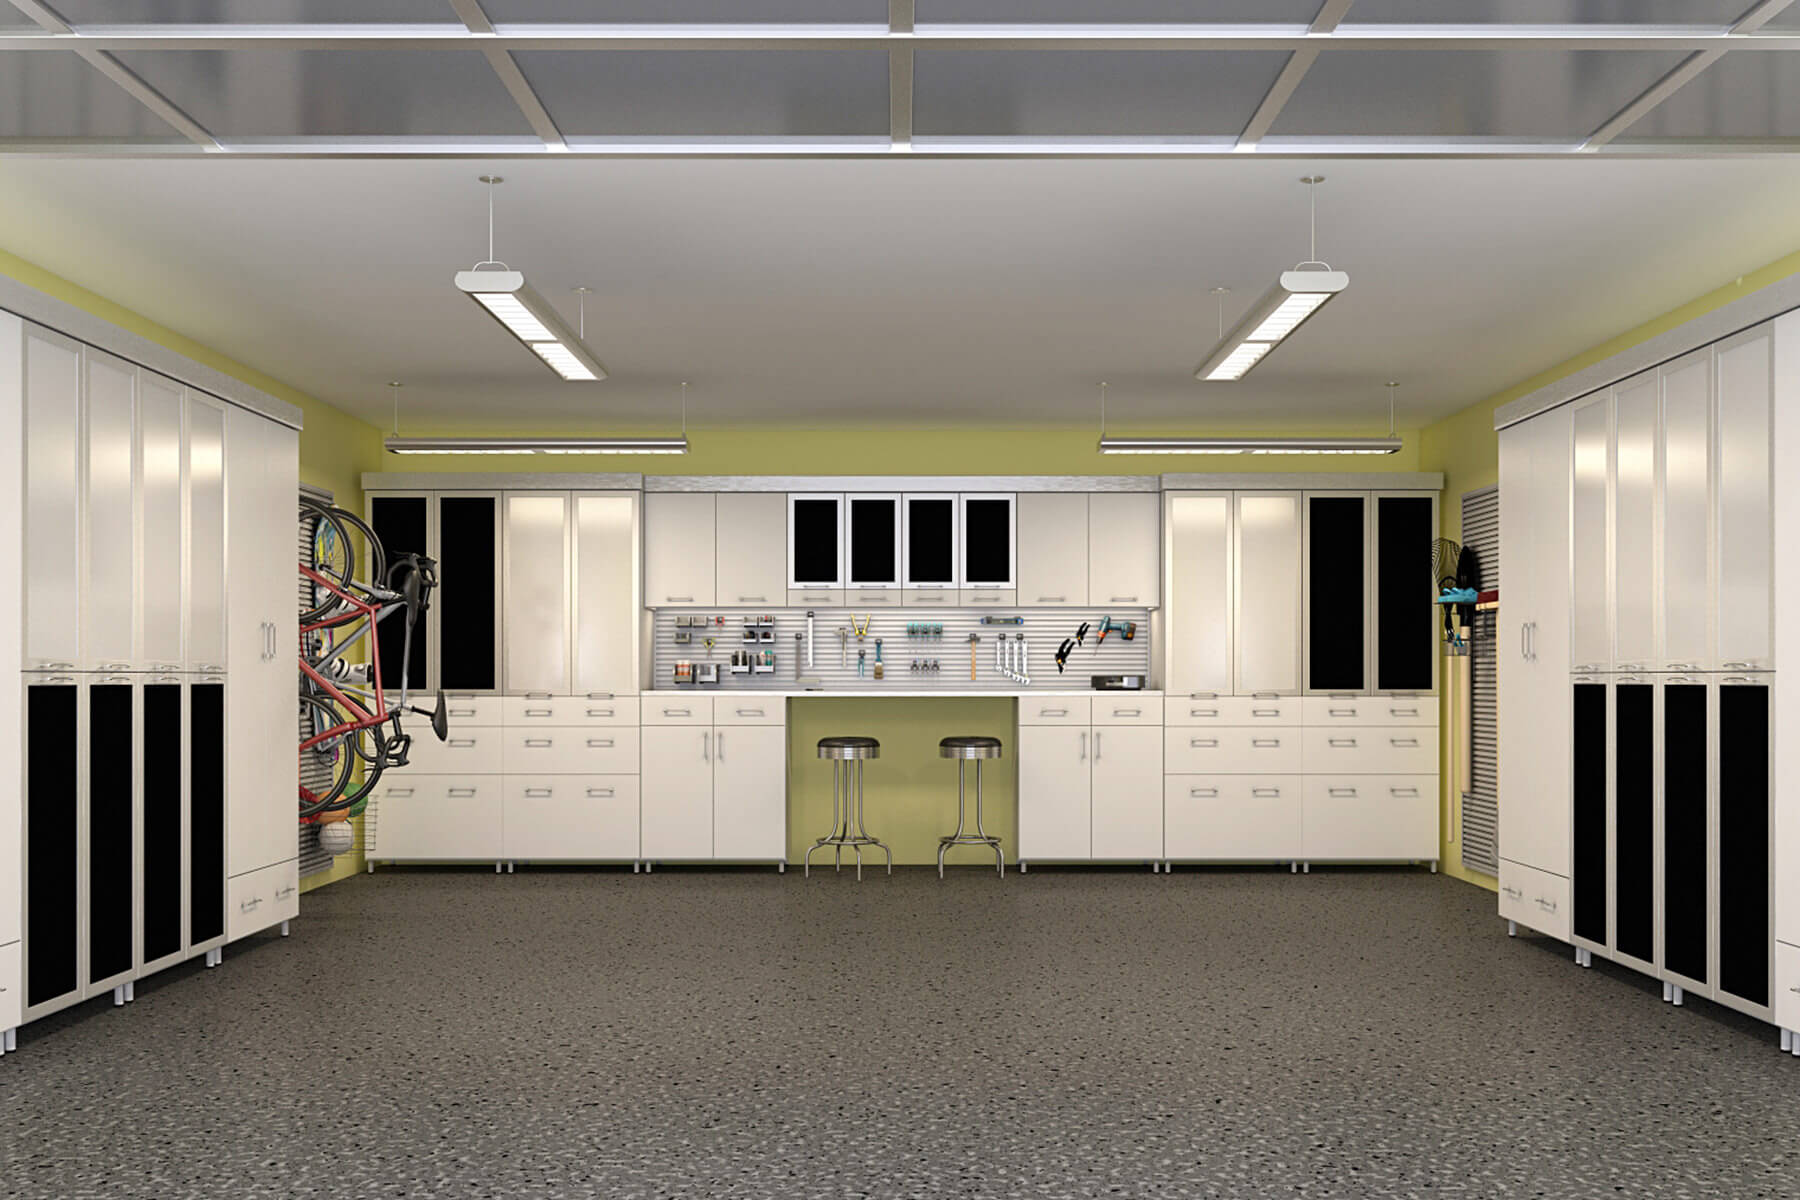 This simple garage features adjustable slatwalls at the center of the white melamine cabinets and to those embedded on the walls. These adjustable slatwalls make it convenient to hang tools and other items without worrying about space.